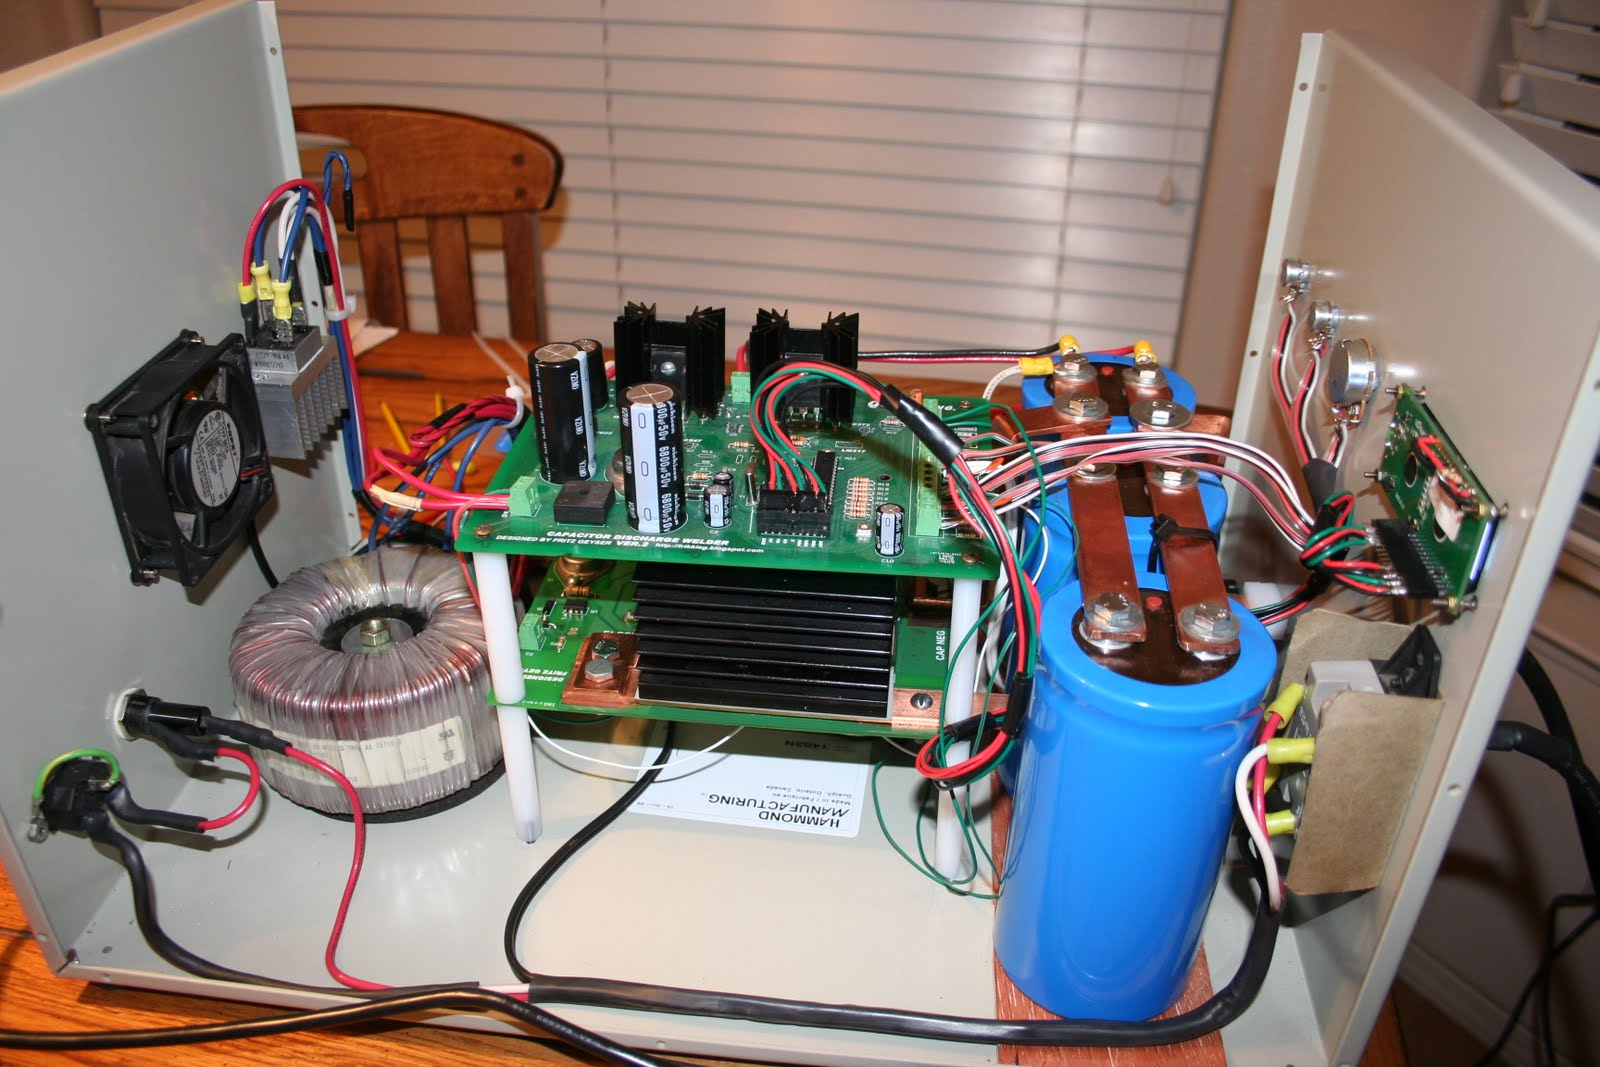 Homemade 600ws Capacitor Discharge Welder New Spot Controller Board Pcb Without Components